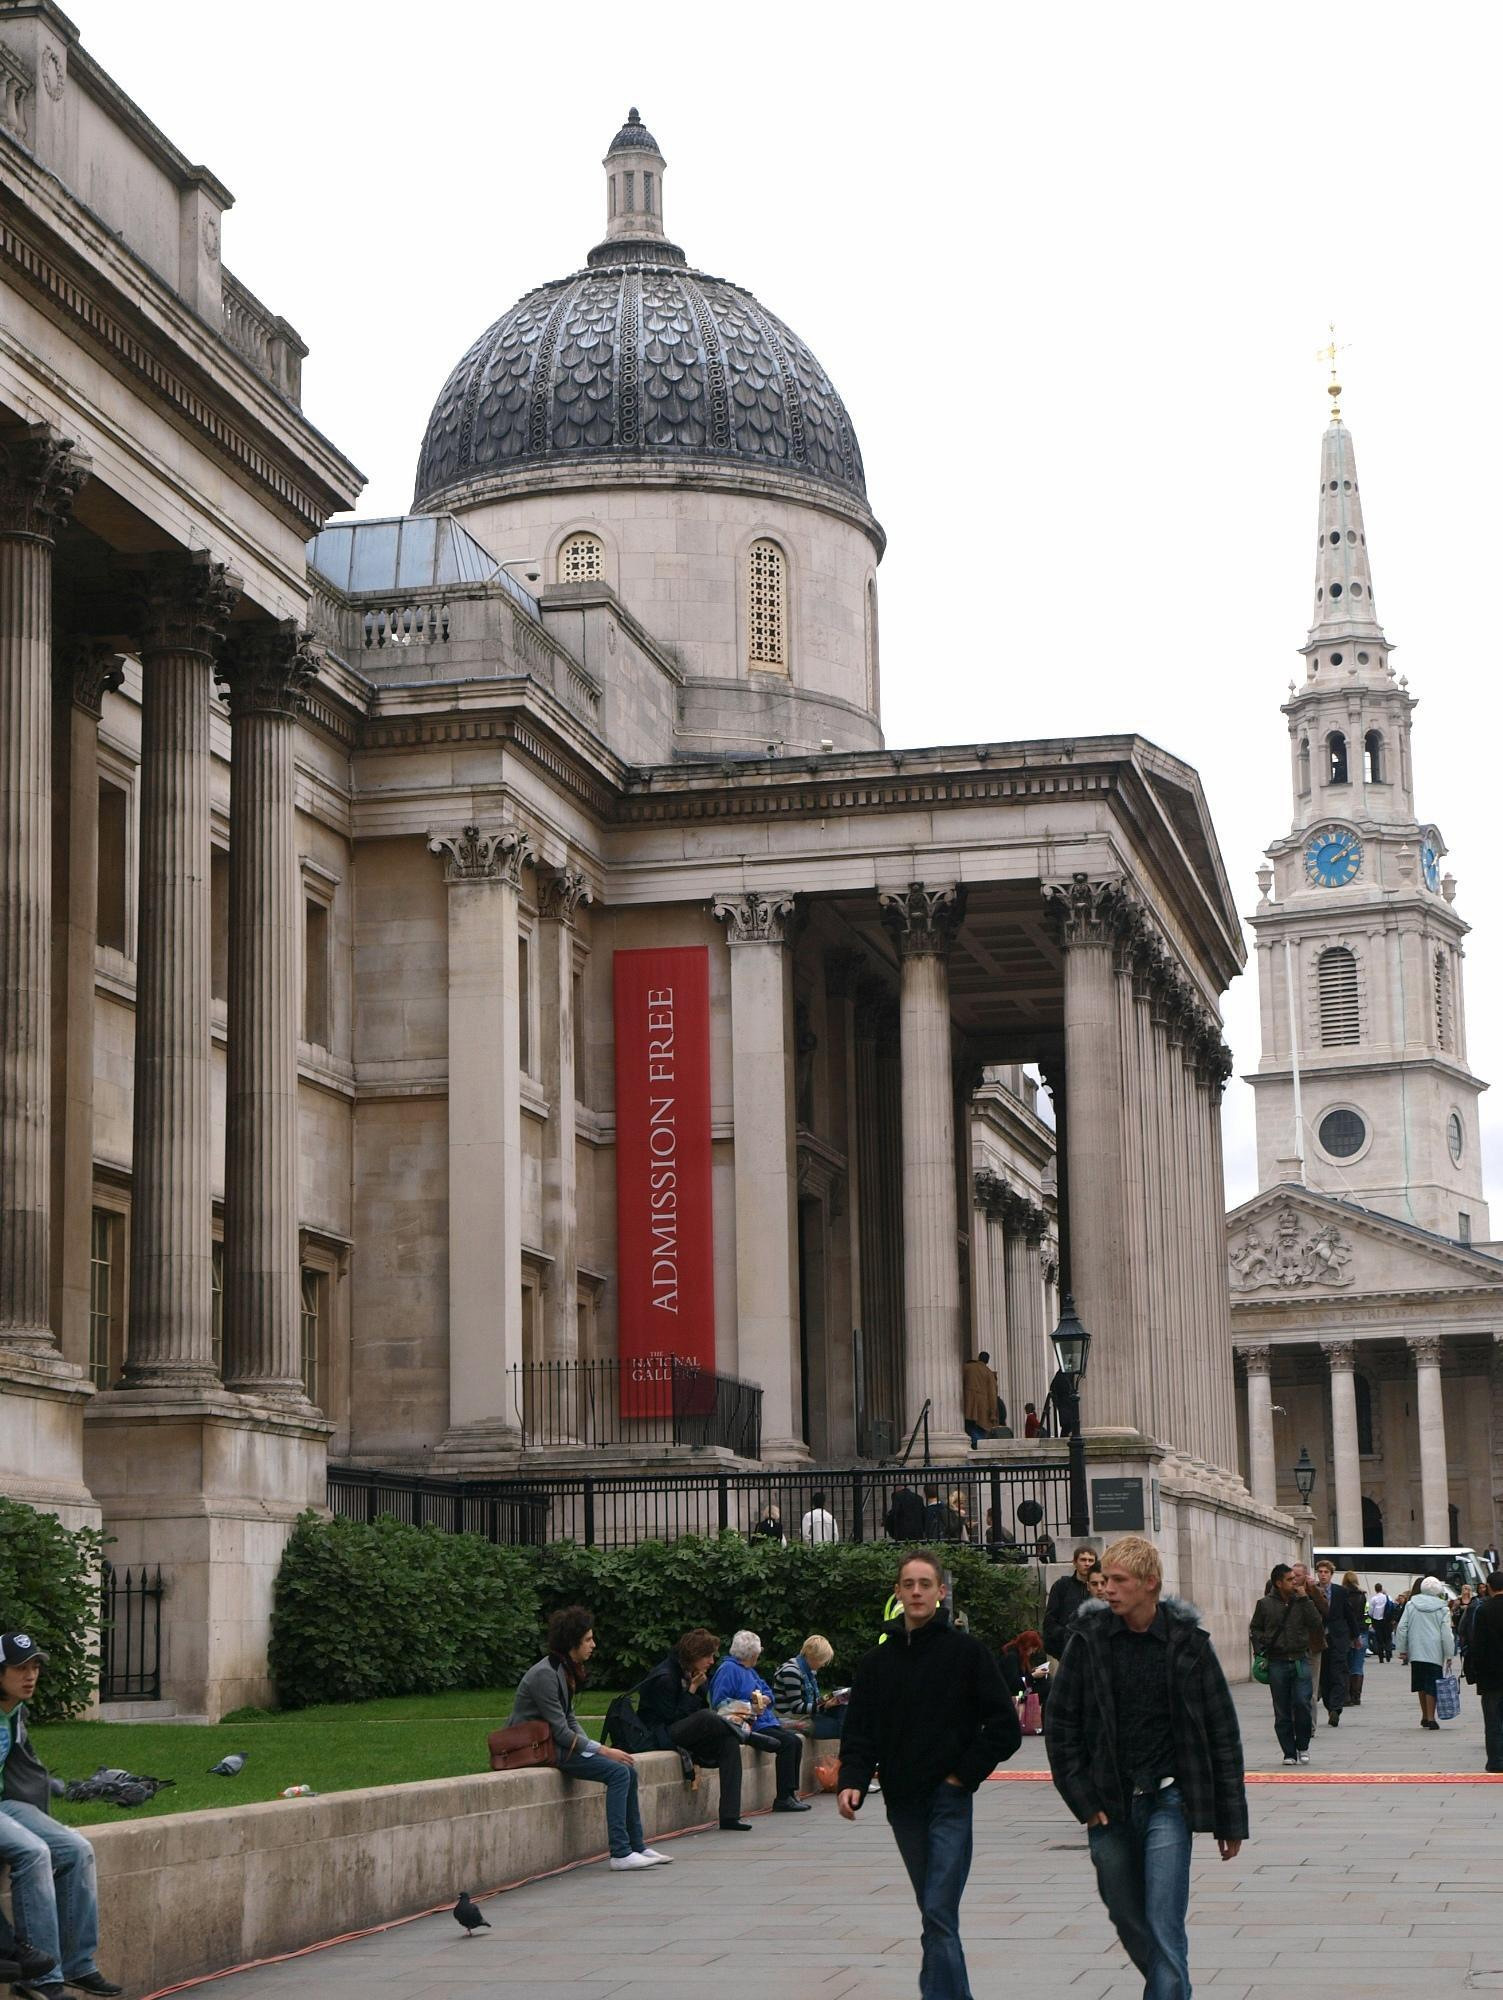 Admission free sign on the side of National Gallery